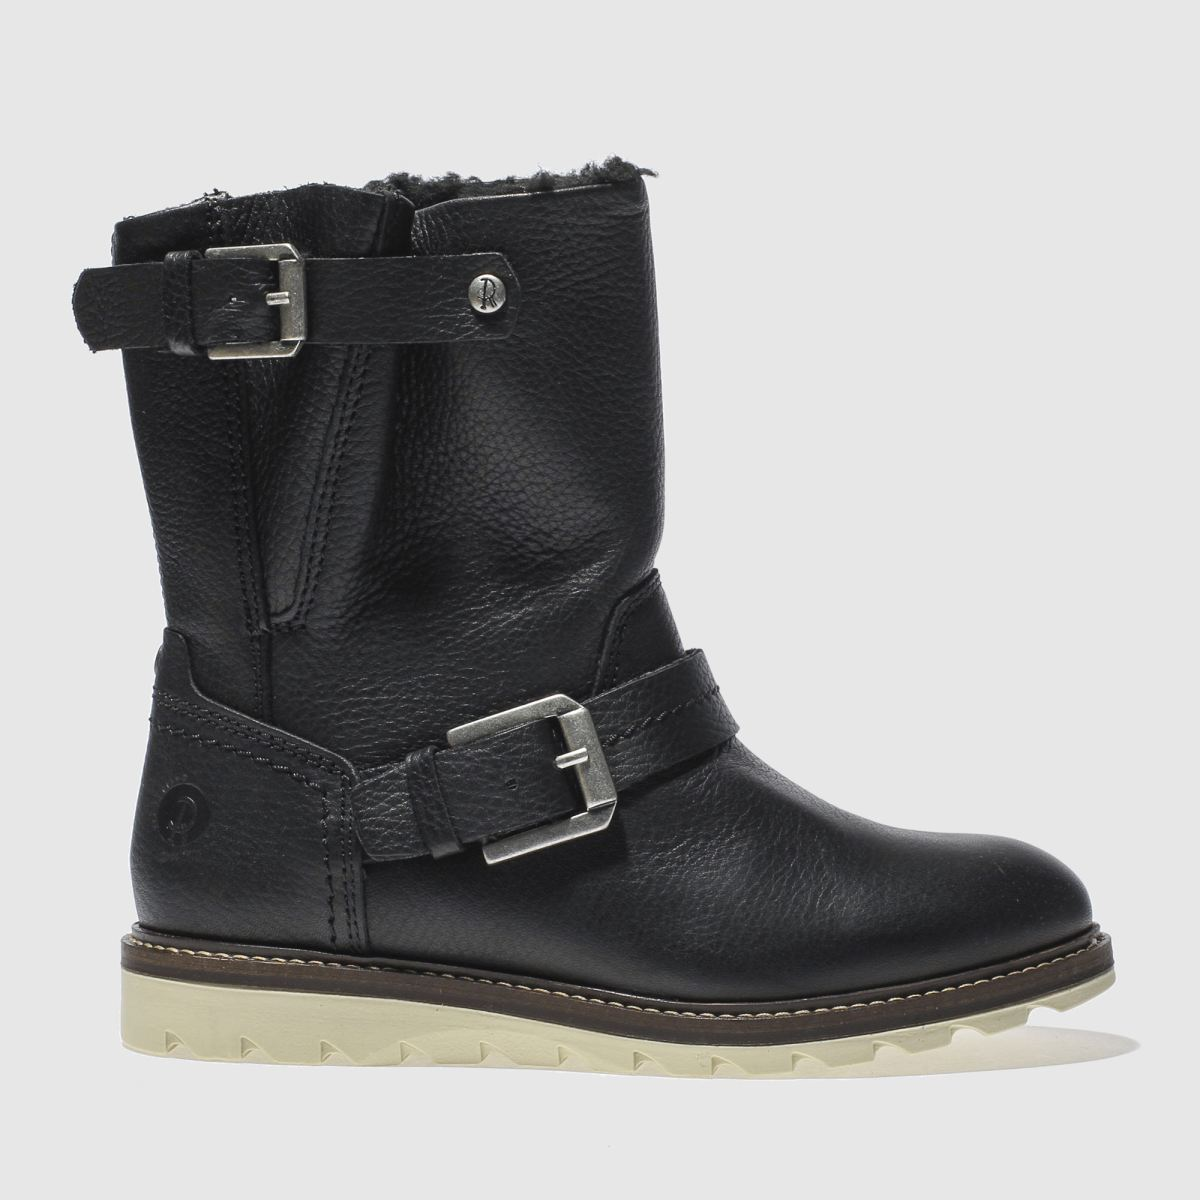 Red Or Dead Black Bubba Boots